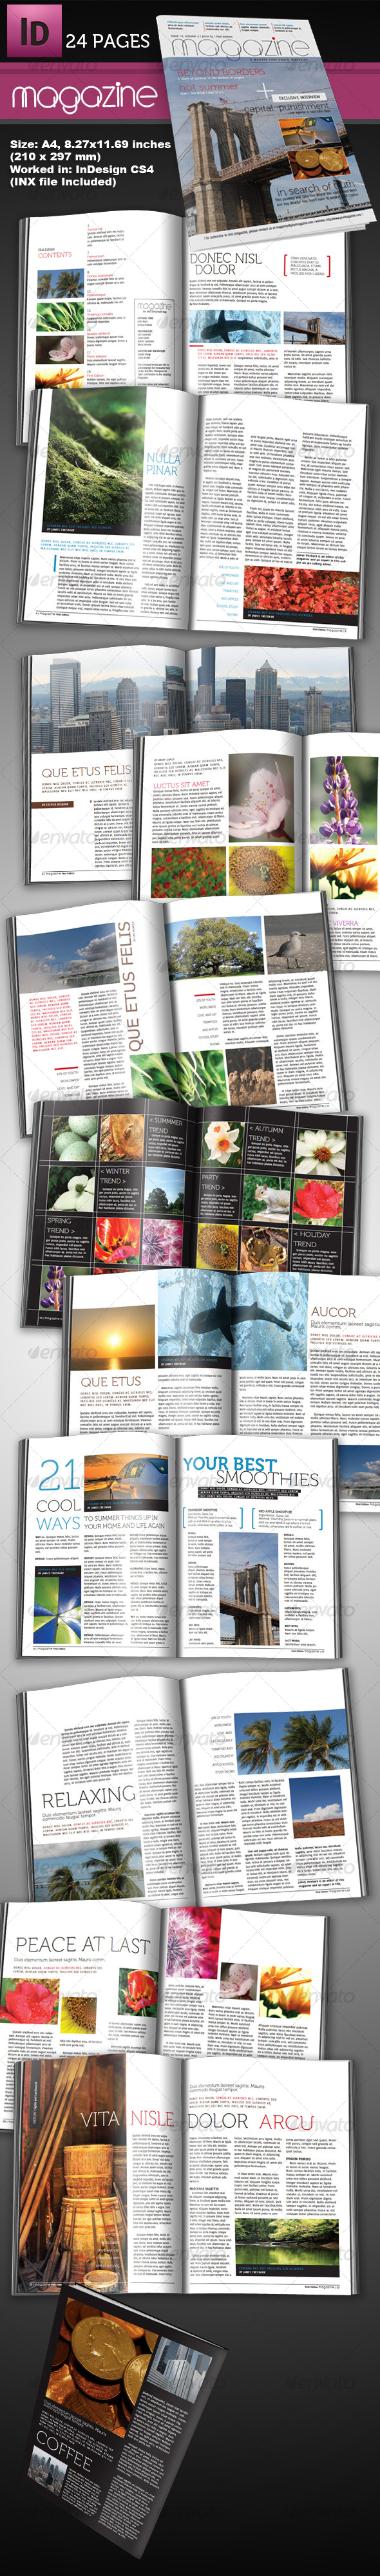 adobe indesign magazine template download free - stylus indesign magazine print ad templates